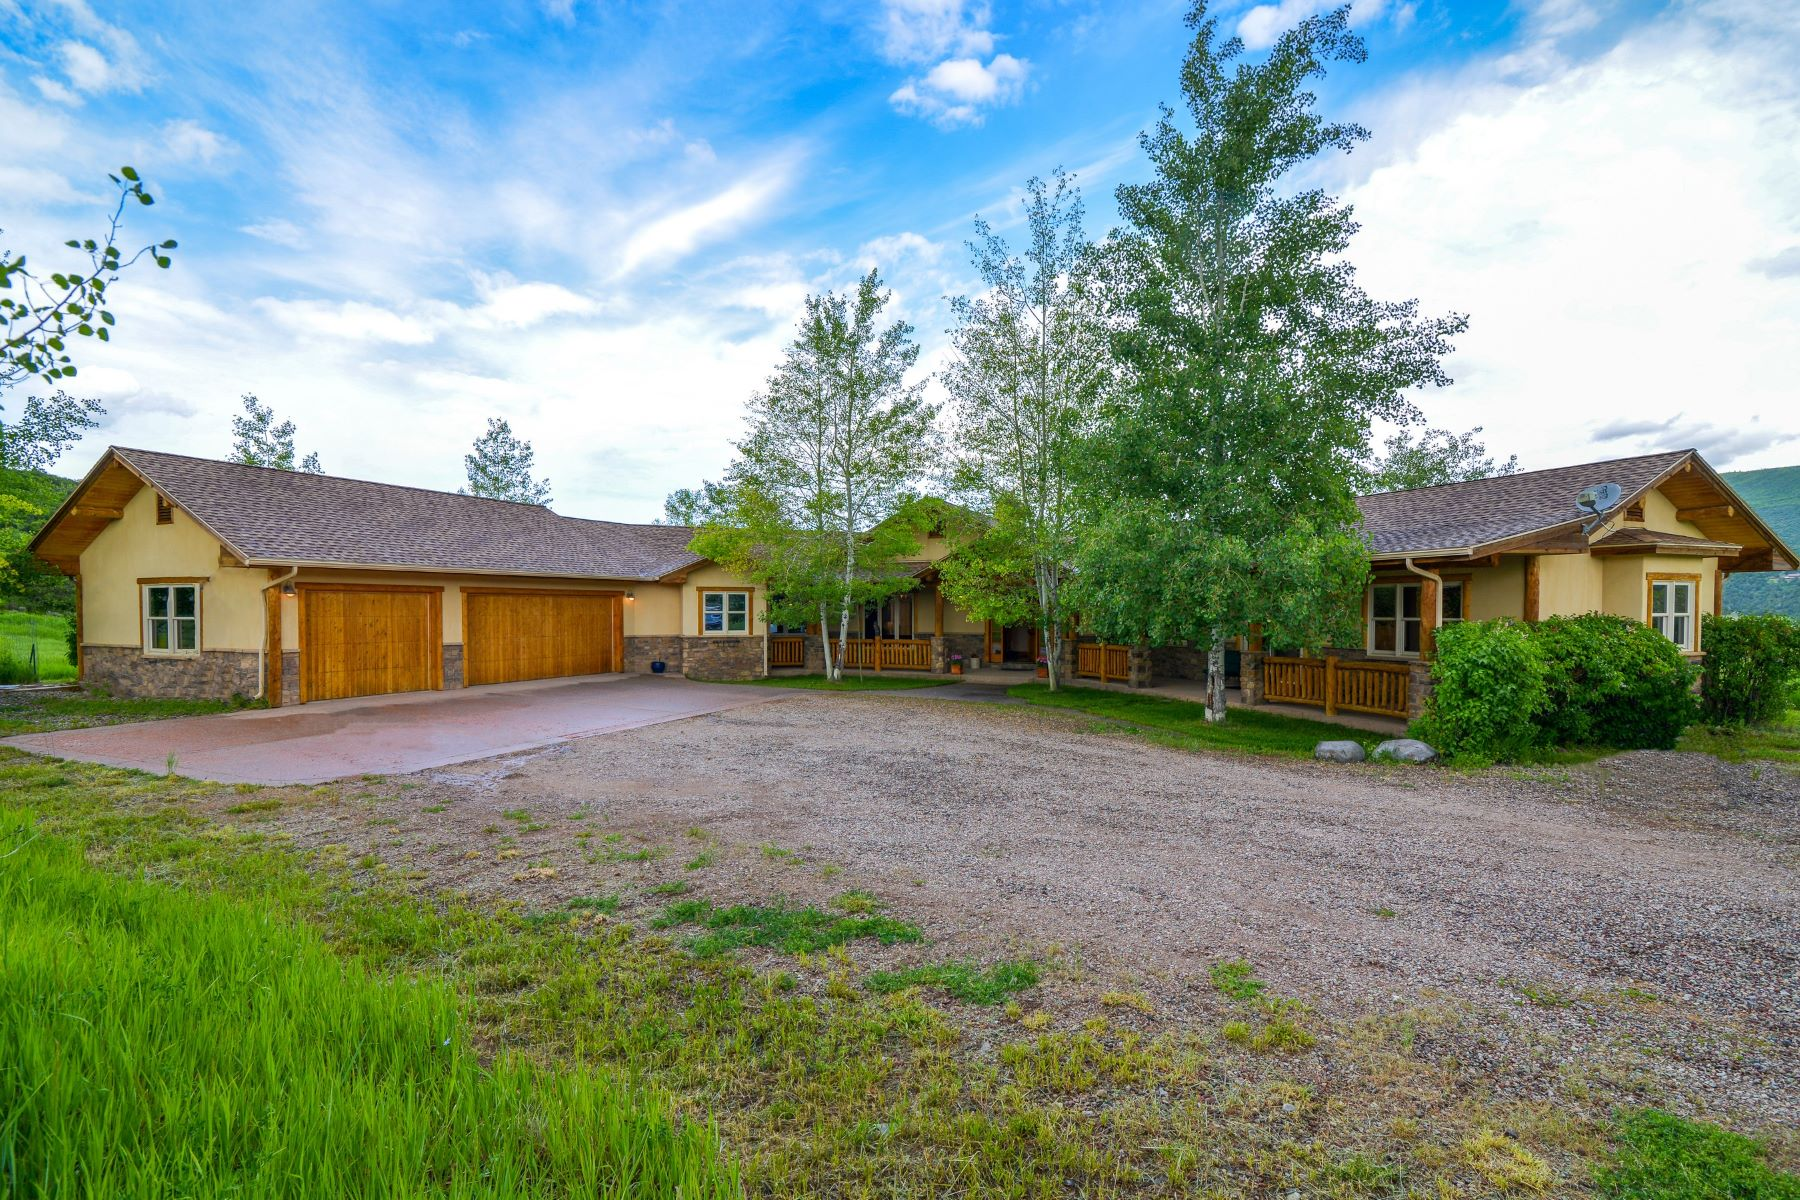 Single Family Homes for Active at 8 Acre Horse Property in Glenwood Springs 486 Heather Lane Glenwood Springs, Colorado 81601 United States